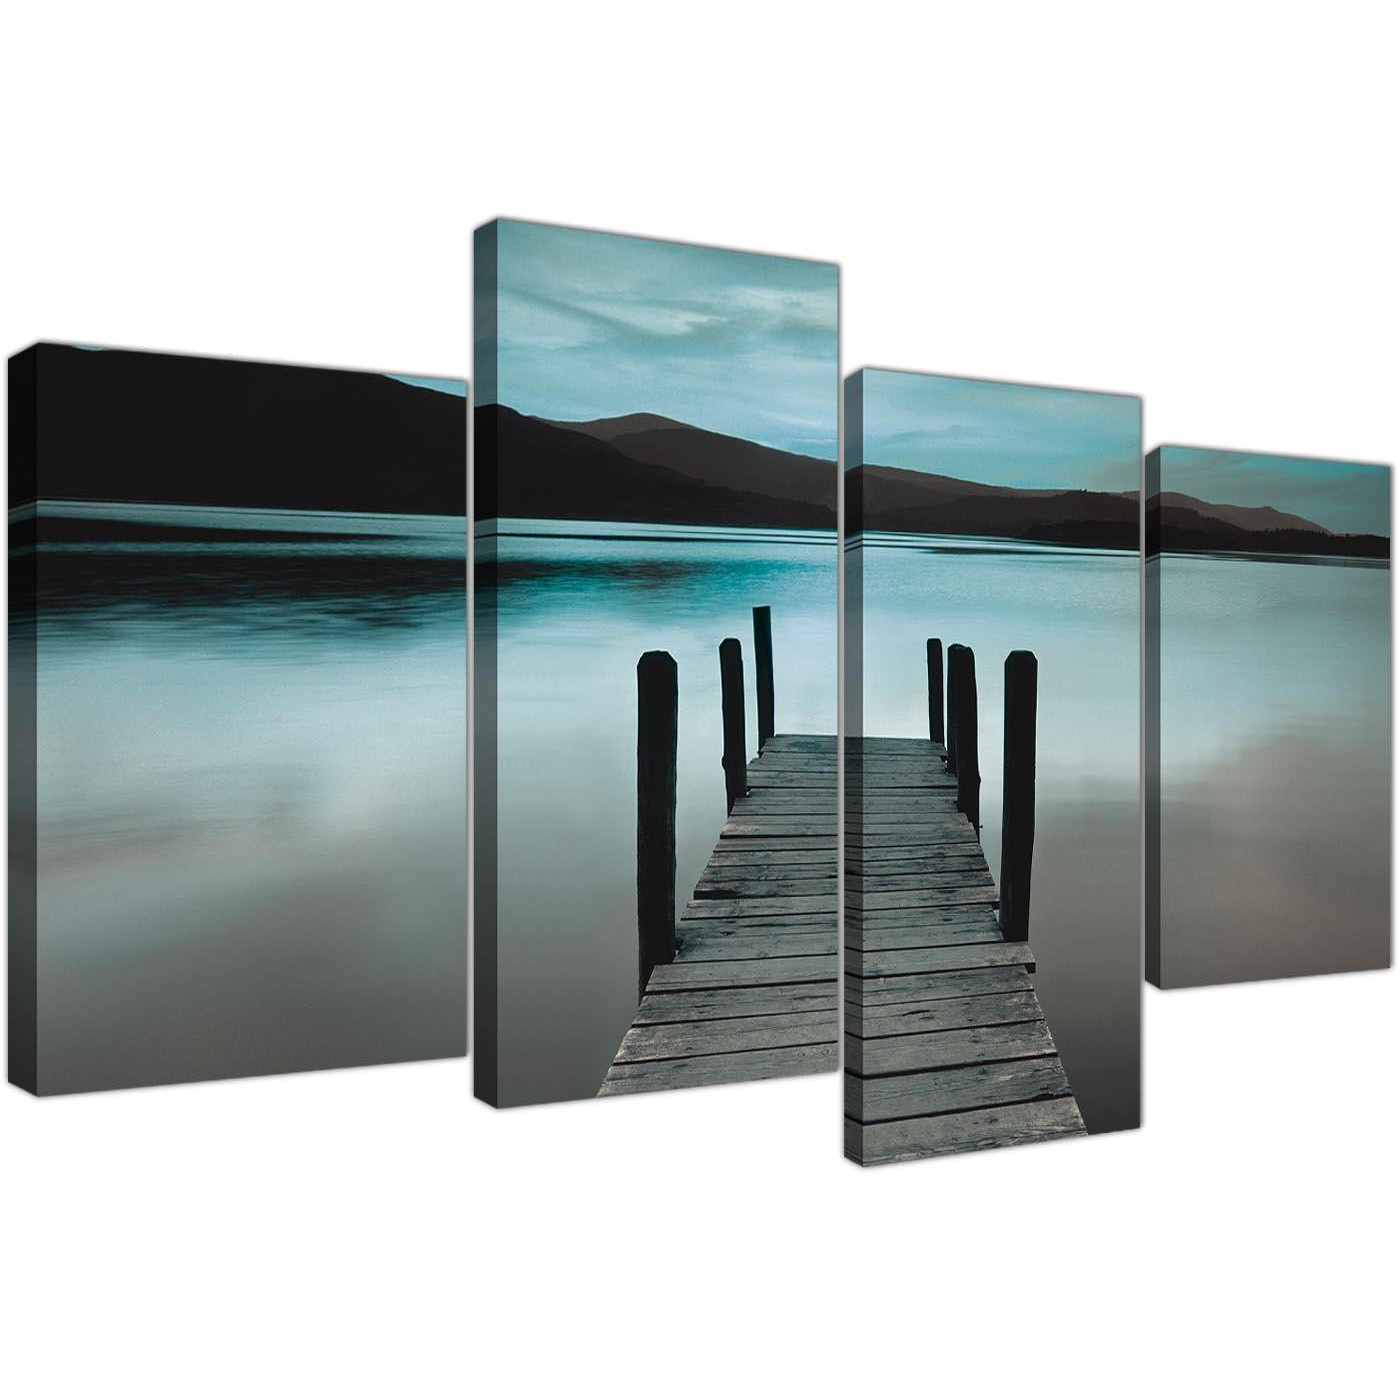 Large Canvas Art Living Room 4 Panel 4237 Display Gallery Item 1 ... Part 52